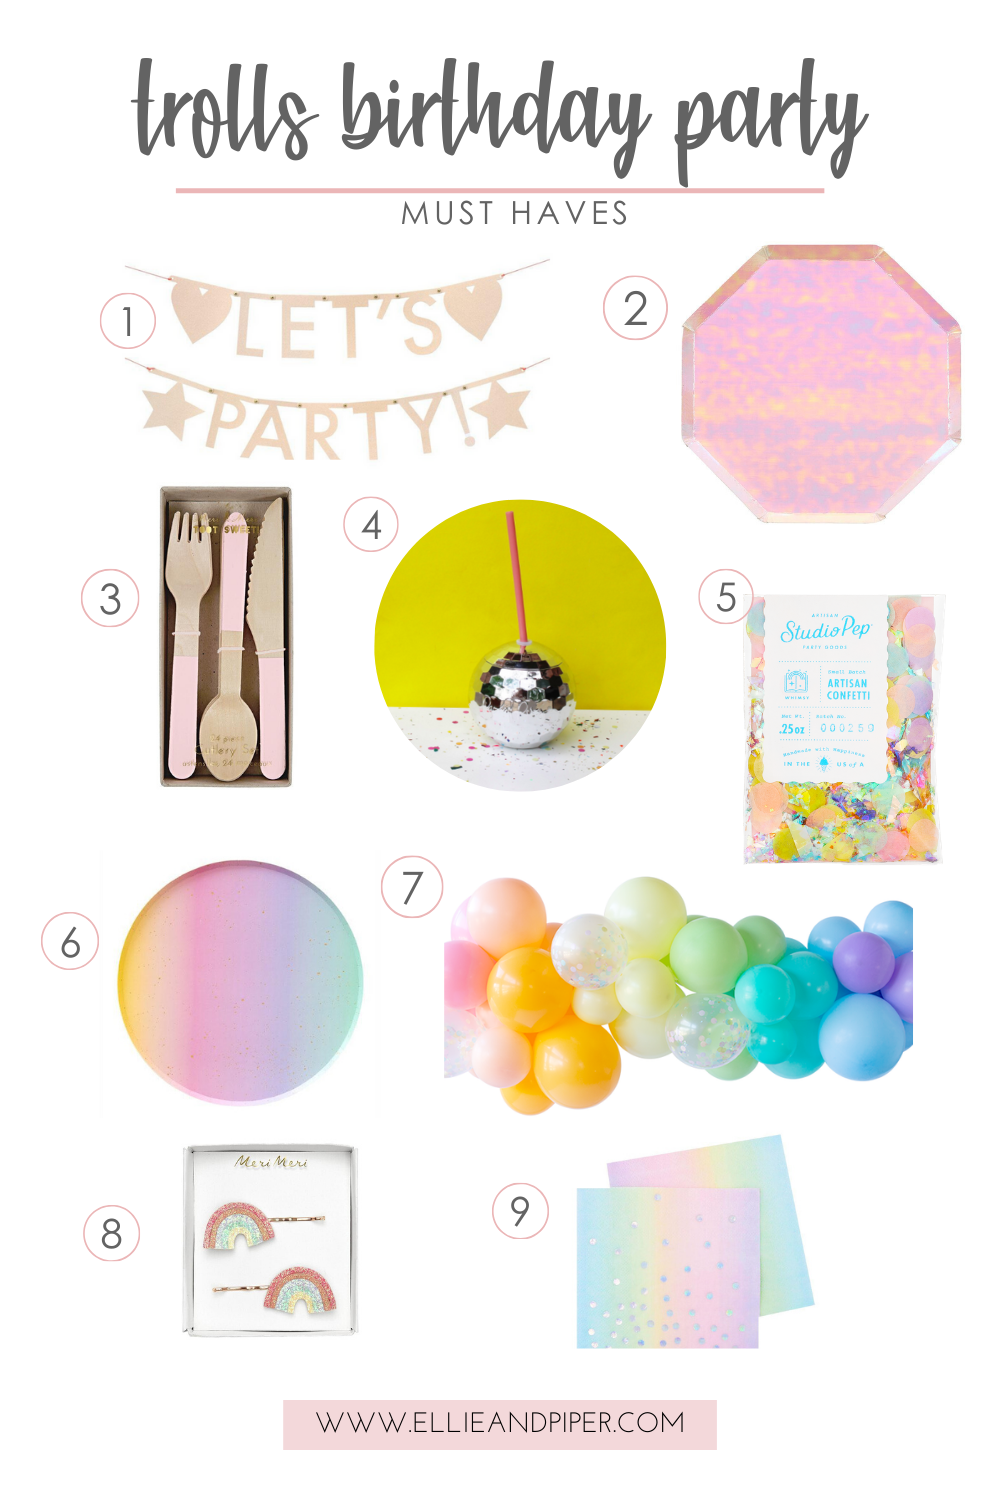 Trolls birthday part must haves from Ellie and piper